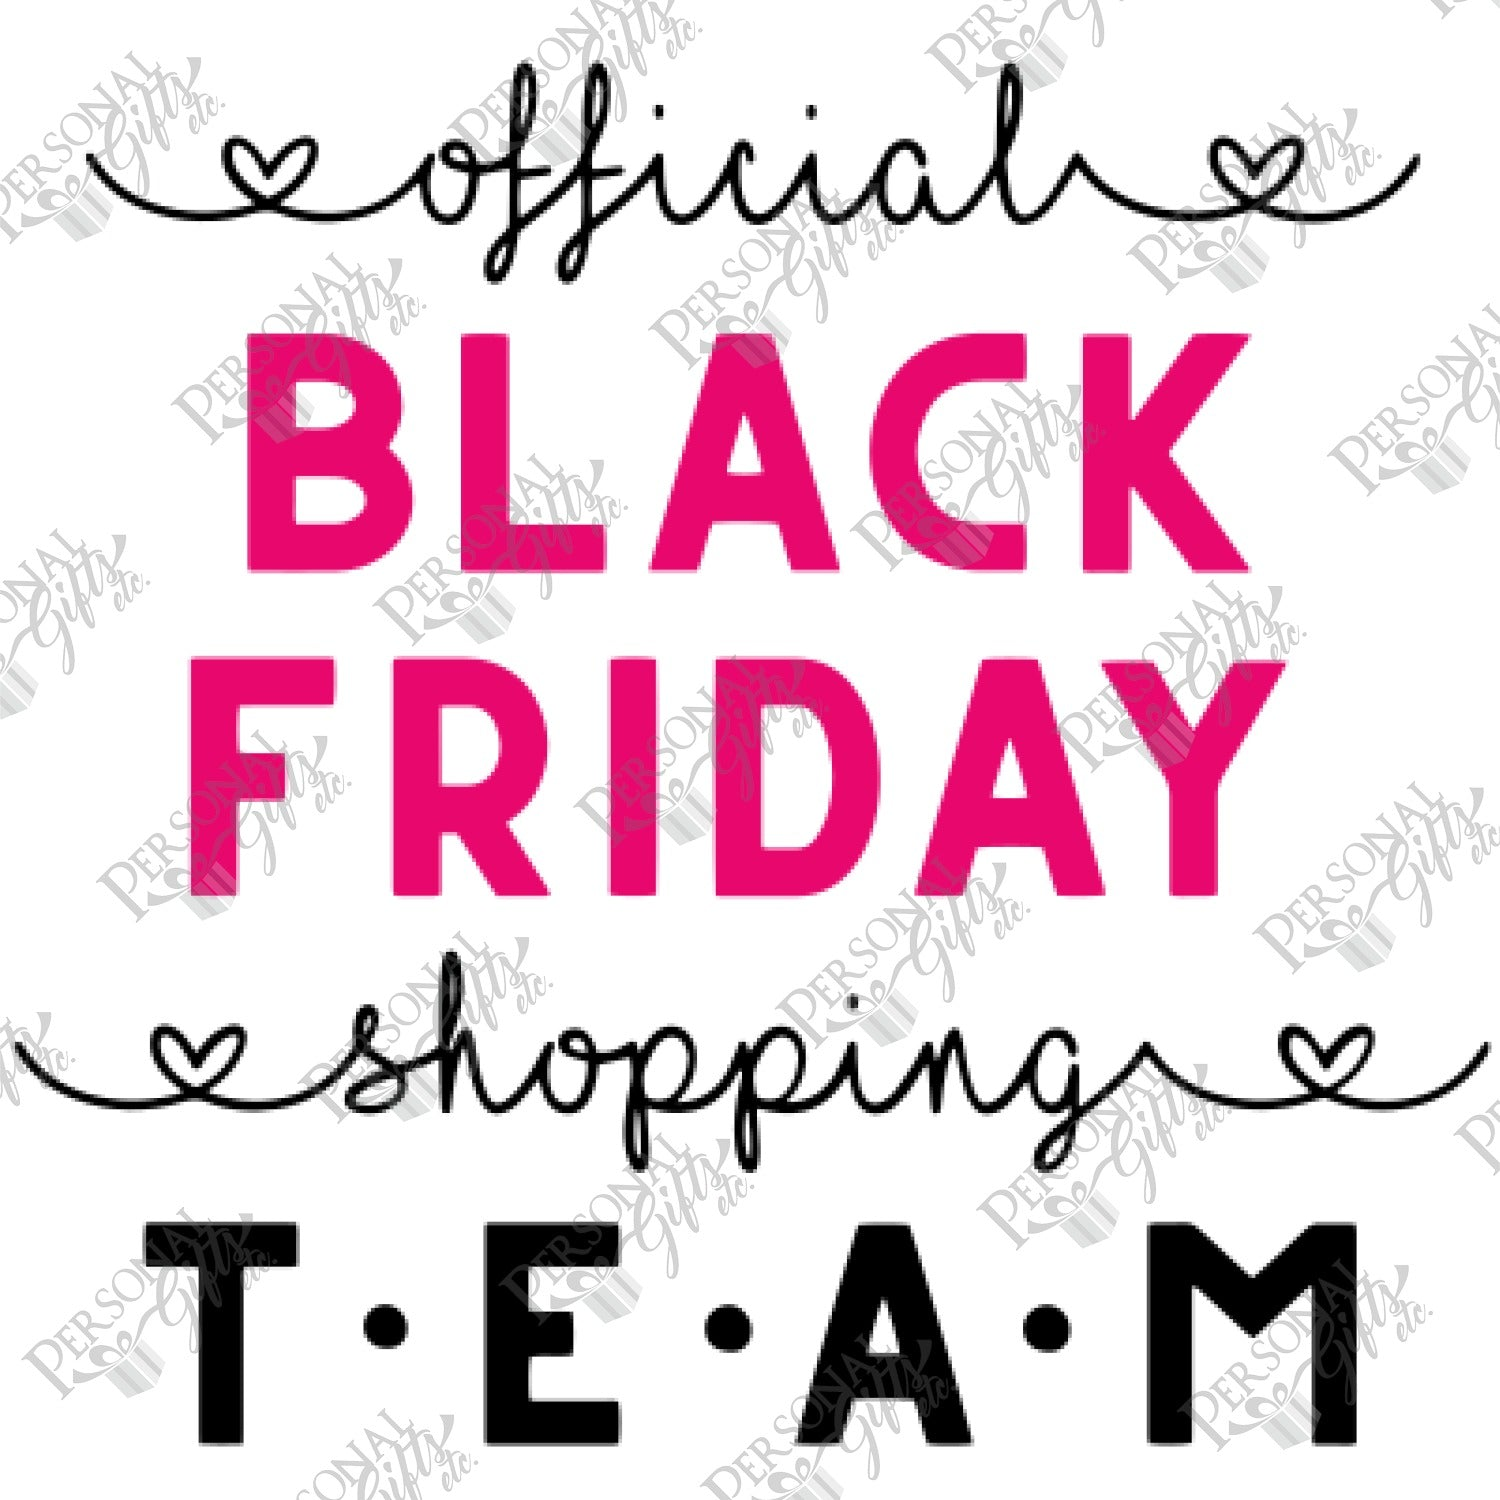 Sub Black Friday Shopping Team Personal Gifts Etc